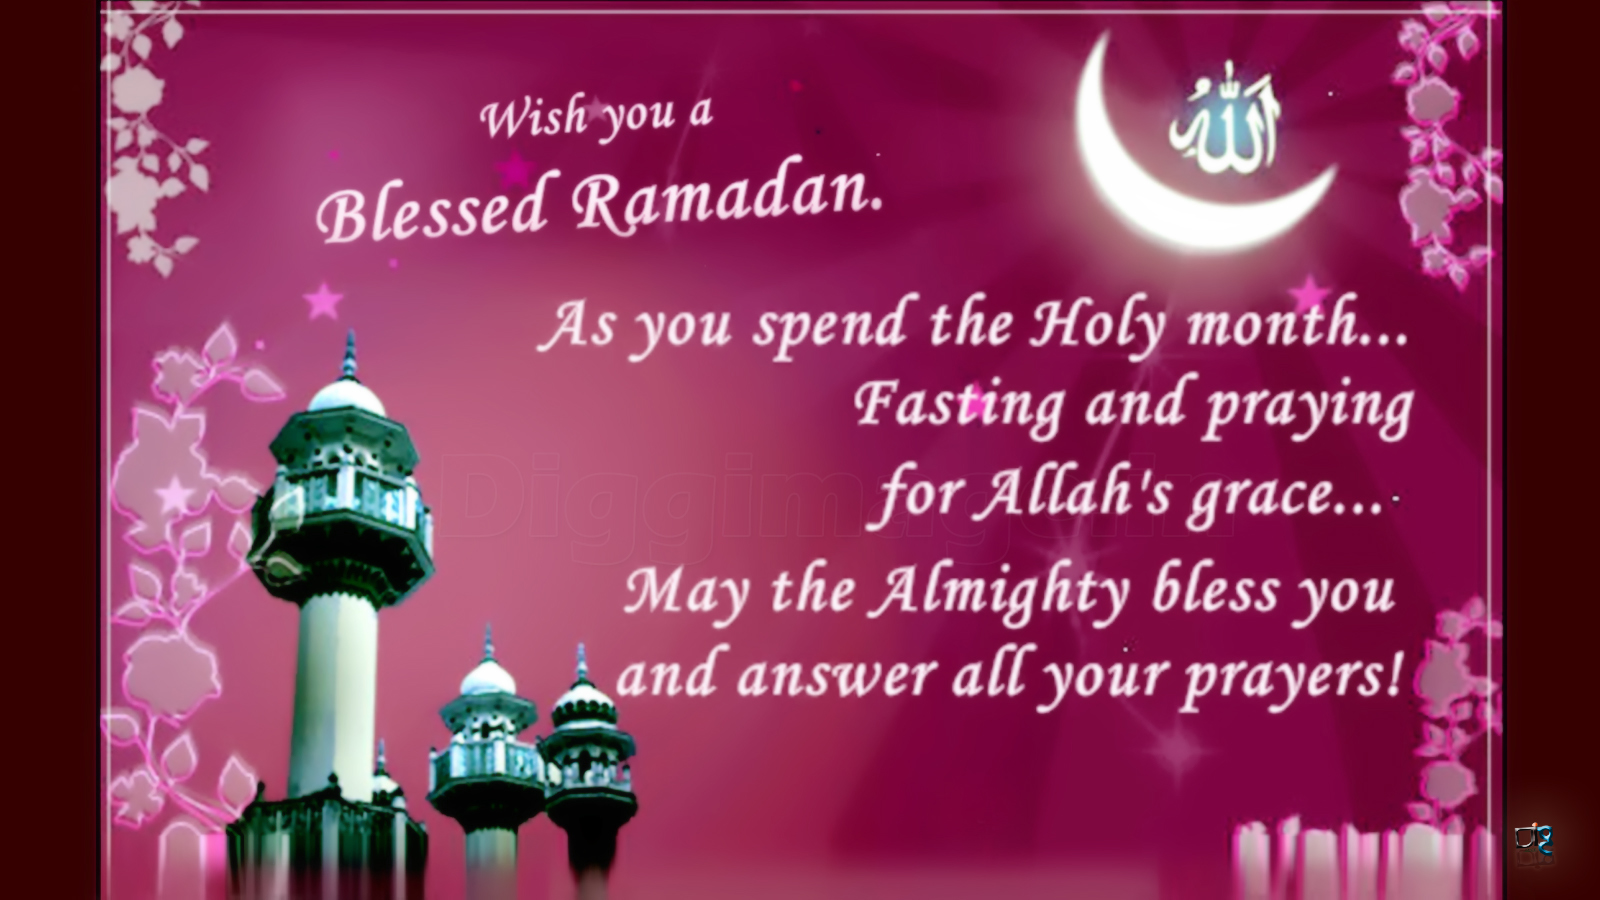 Ramadan mubarak greeting card 365greetings com - Filename Wish You A Blessed Ramadan As You Spend The Holy Month Fasting And Prayers For Allah S Grace Jpg